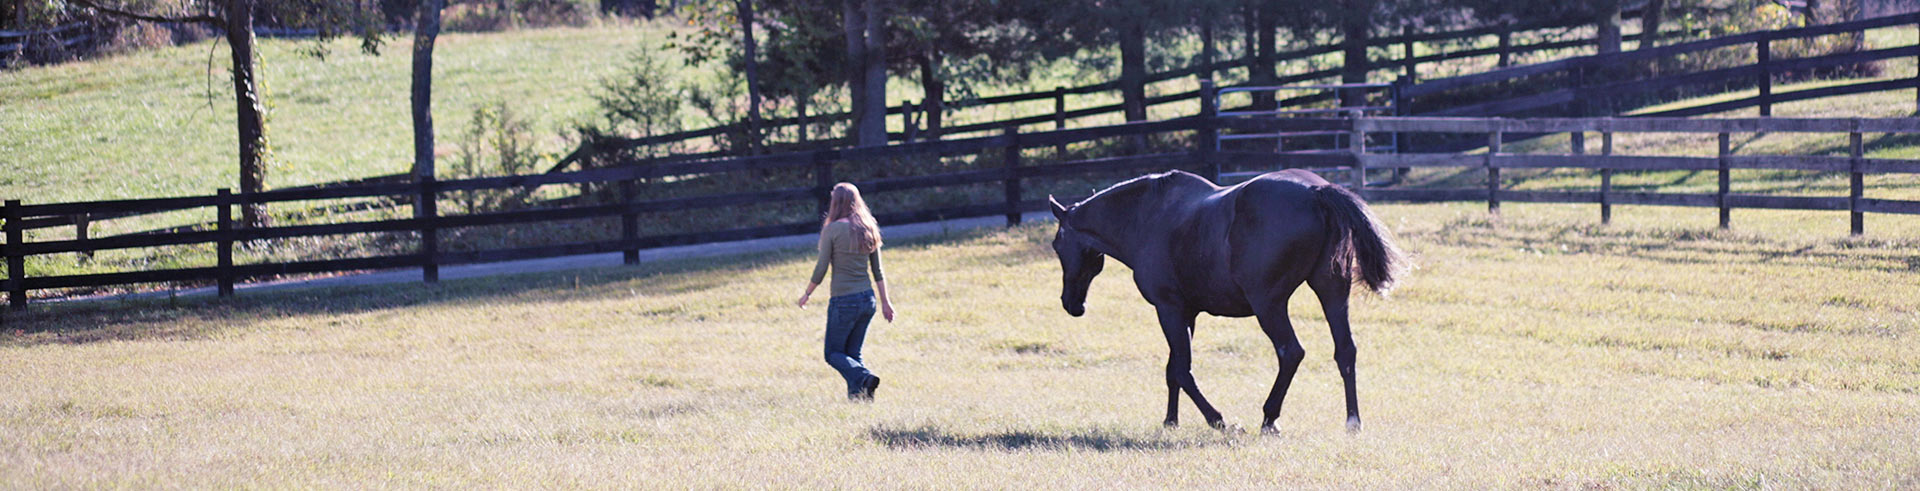 Emily and horse running